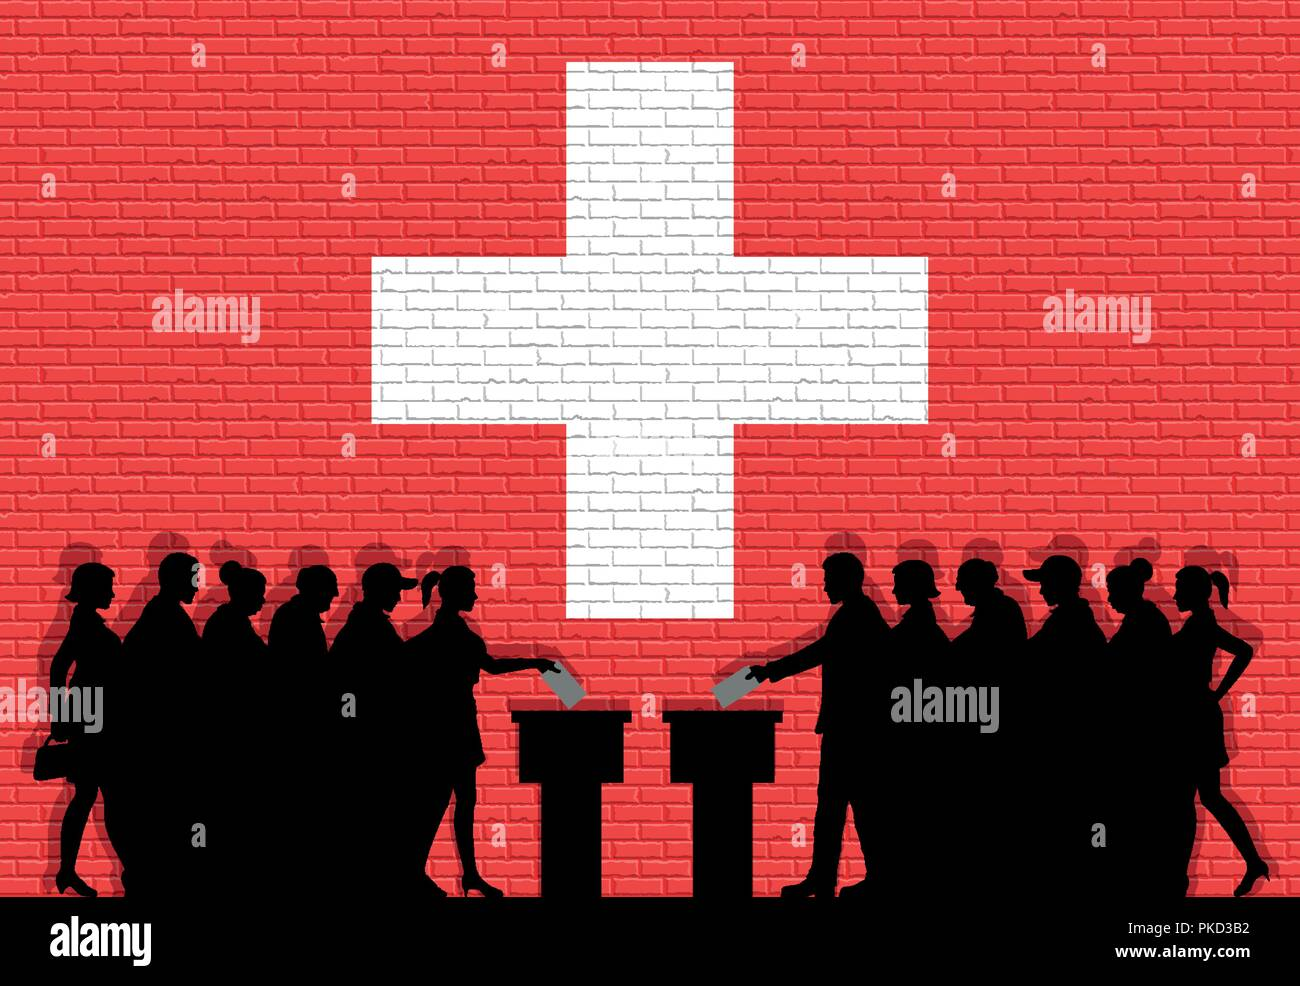 Swiss voters crowd silhouette in election with Switzerland flag graffiti in front of brick wall. All the silhouette objects, icons and background are  - Stock Vector